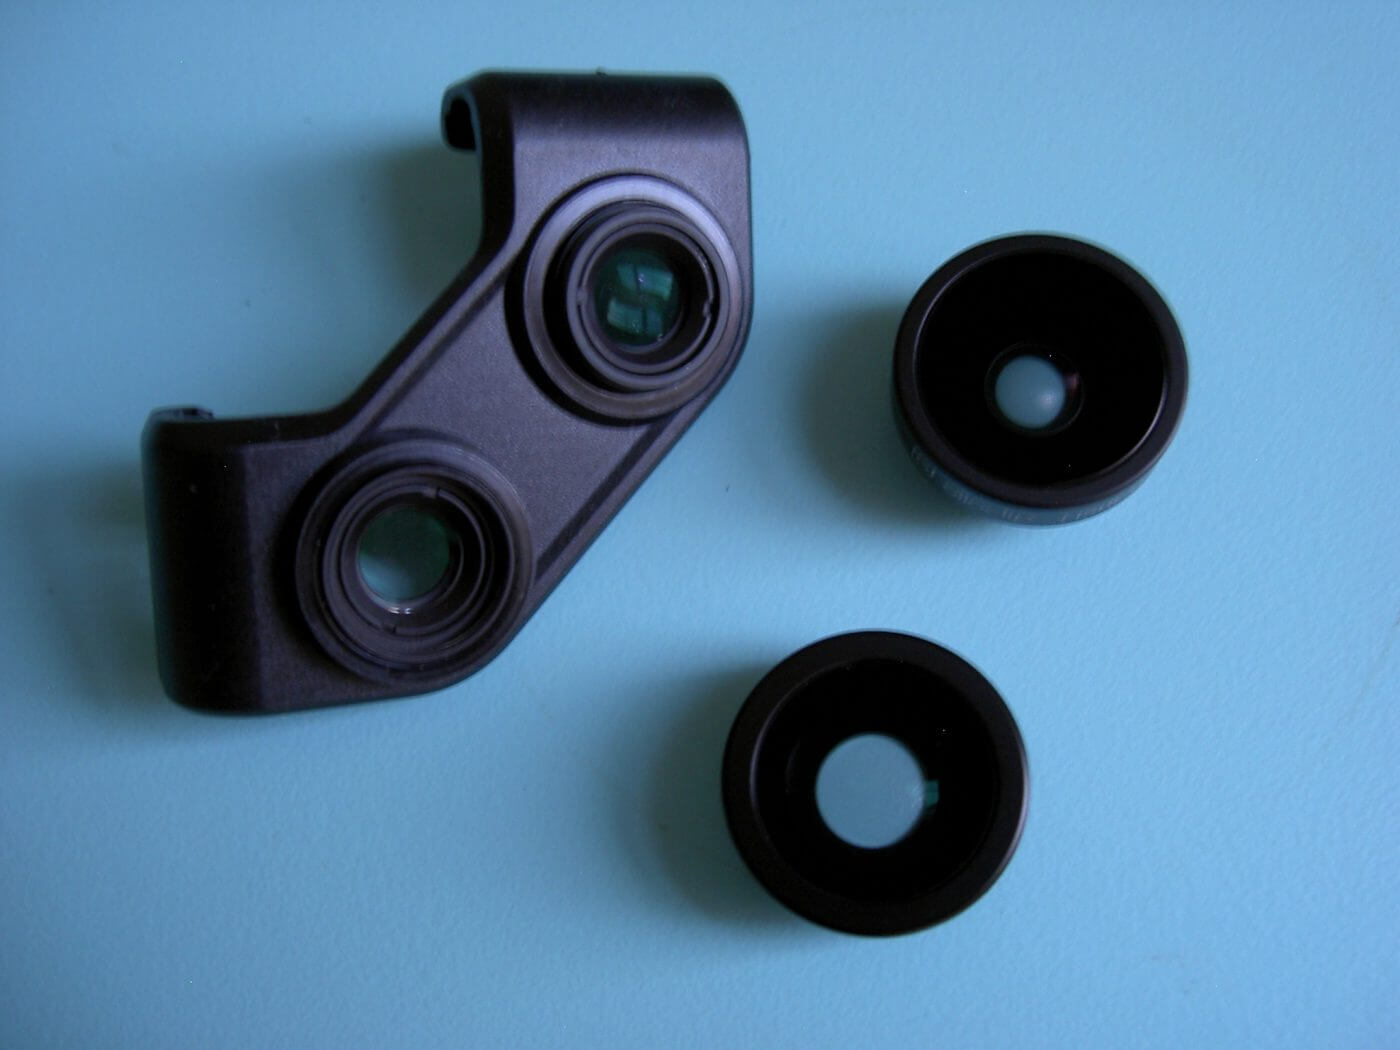 Olloclip with Lenses Removed